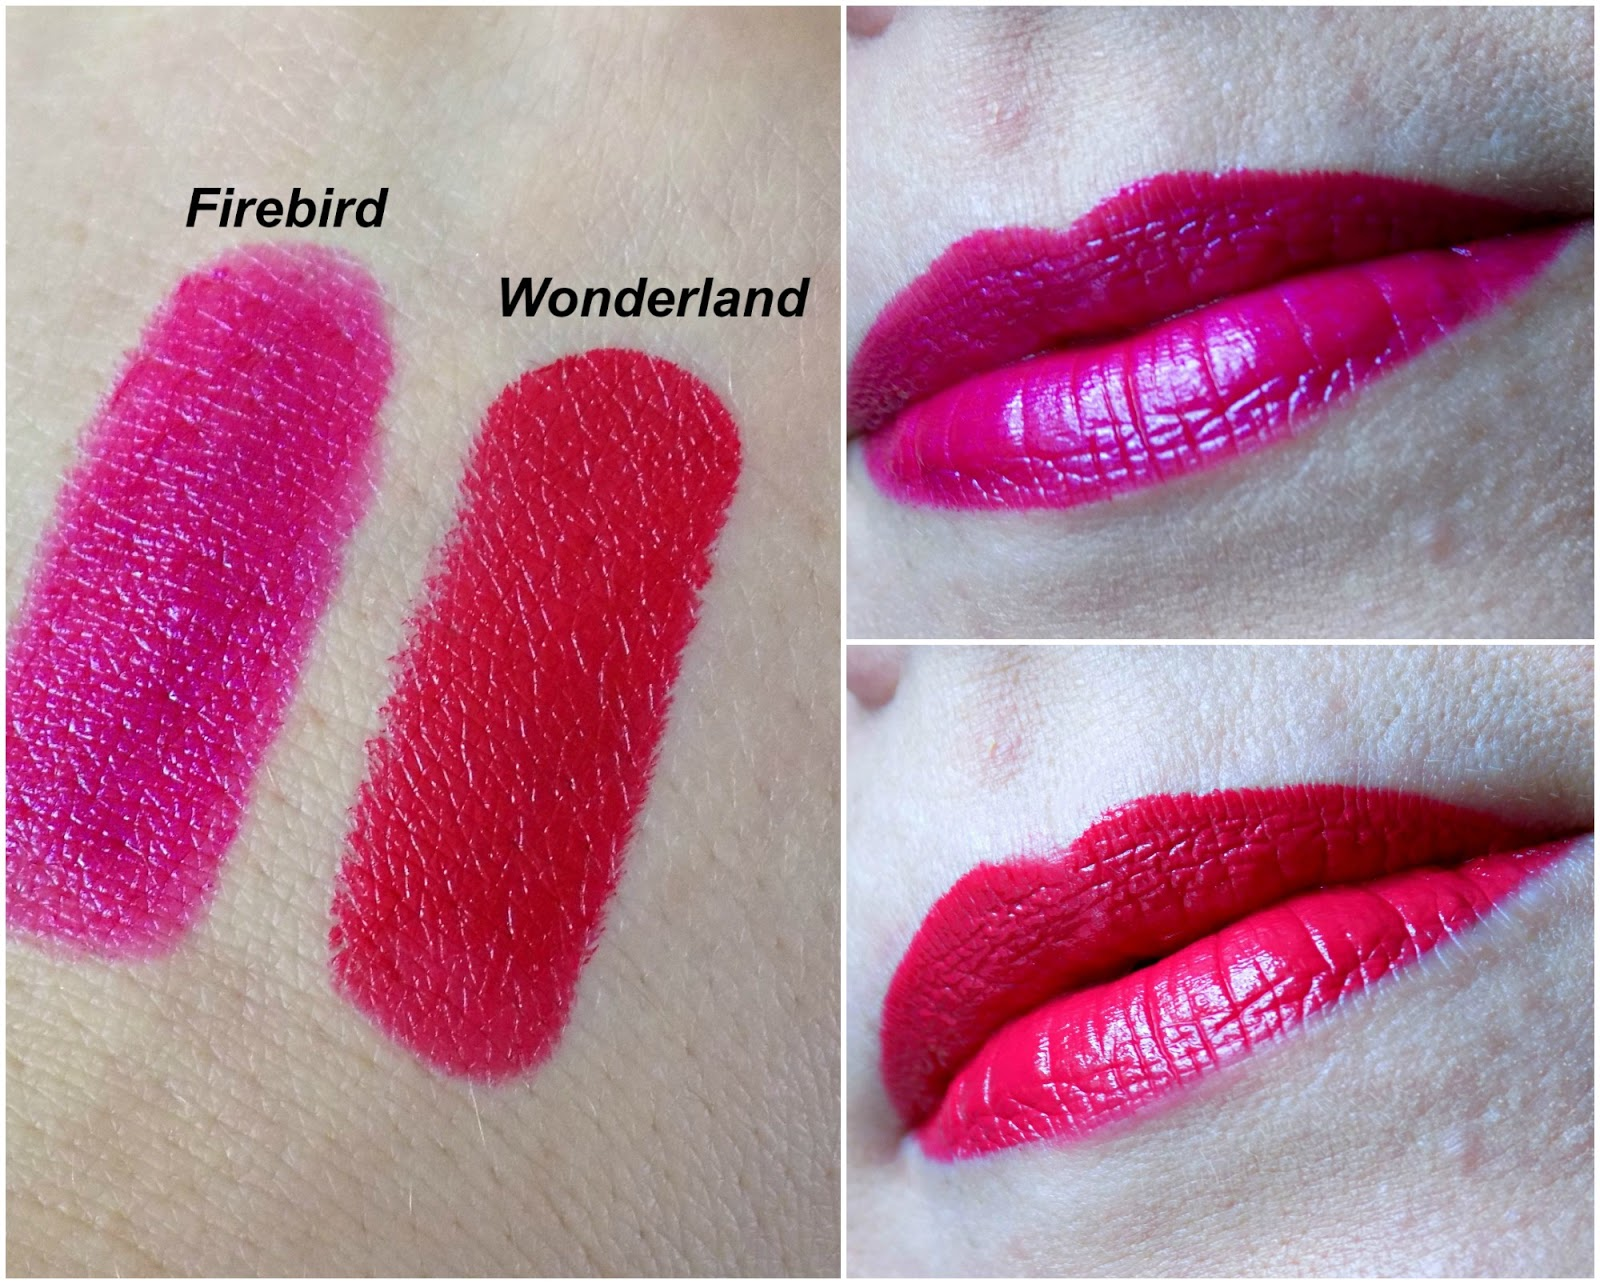 Urban Decay & Gwen Stefani lipsticks, Firebird and Wonderland